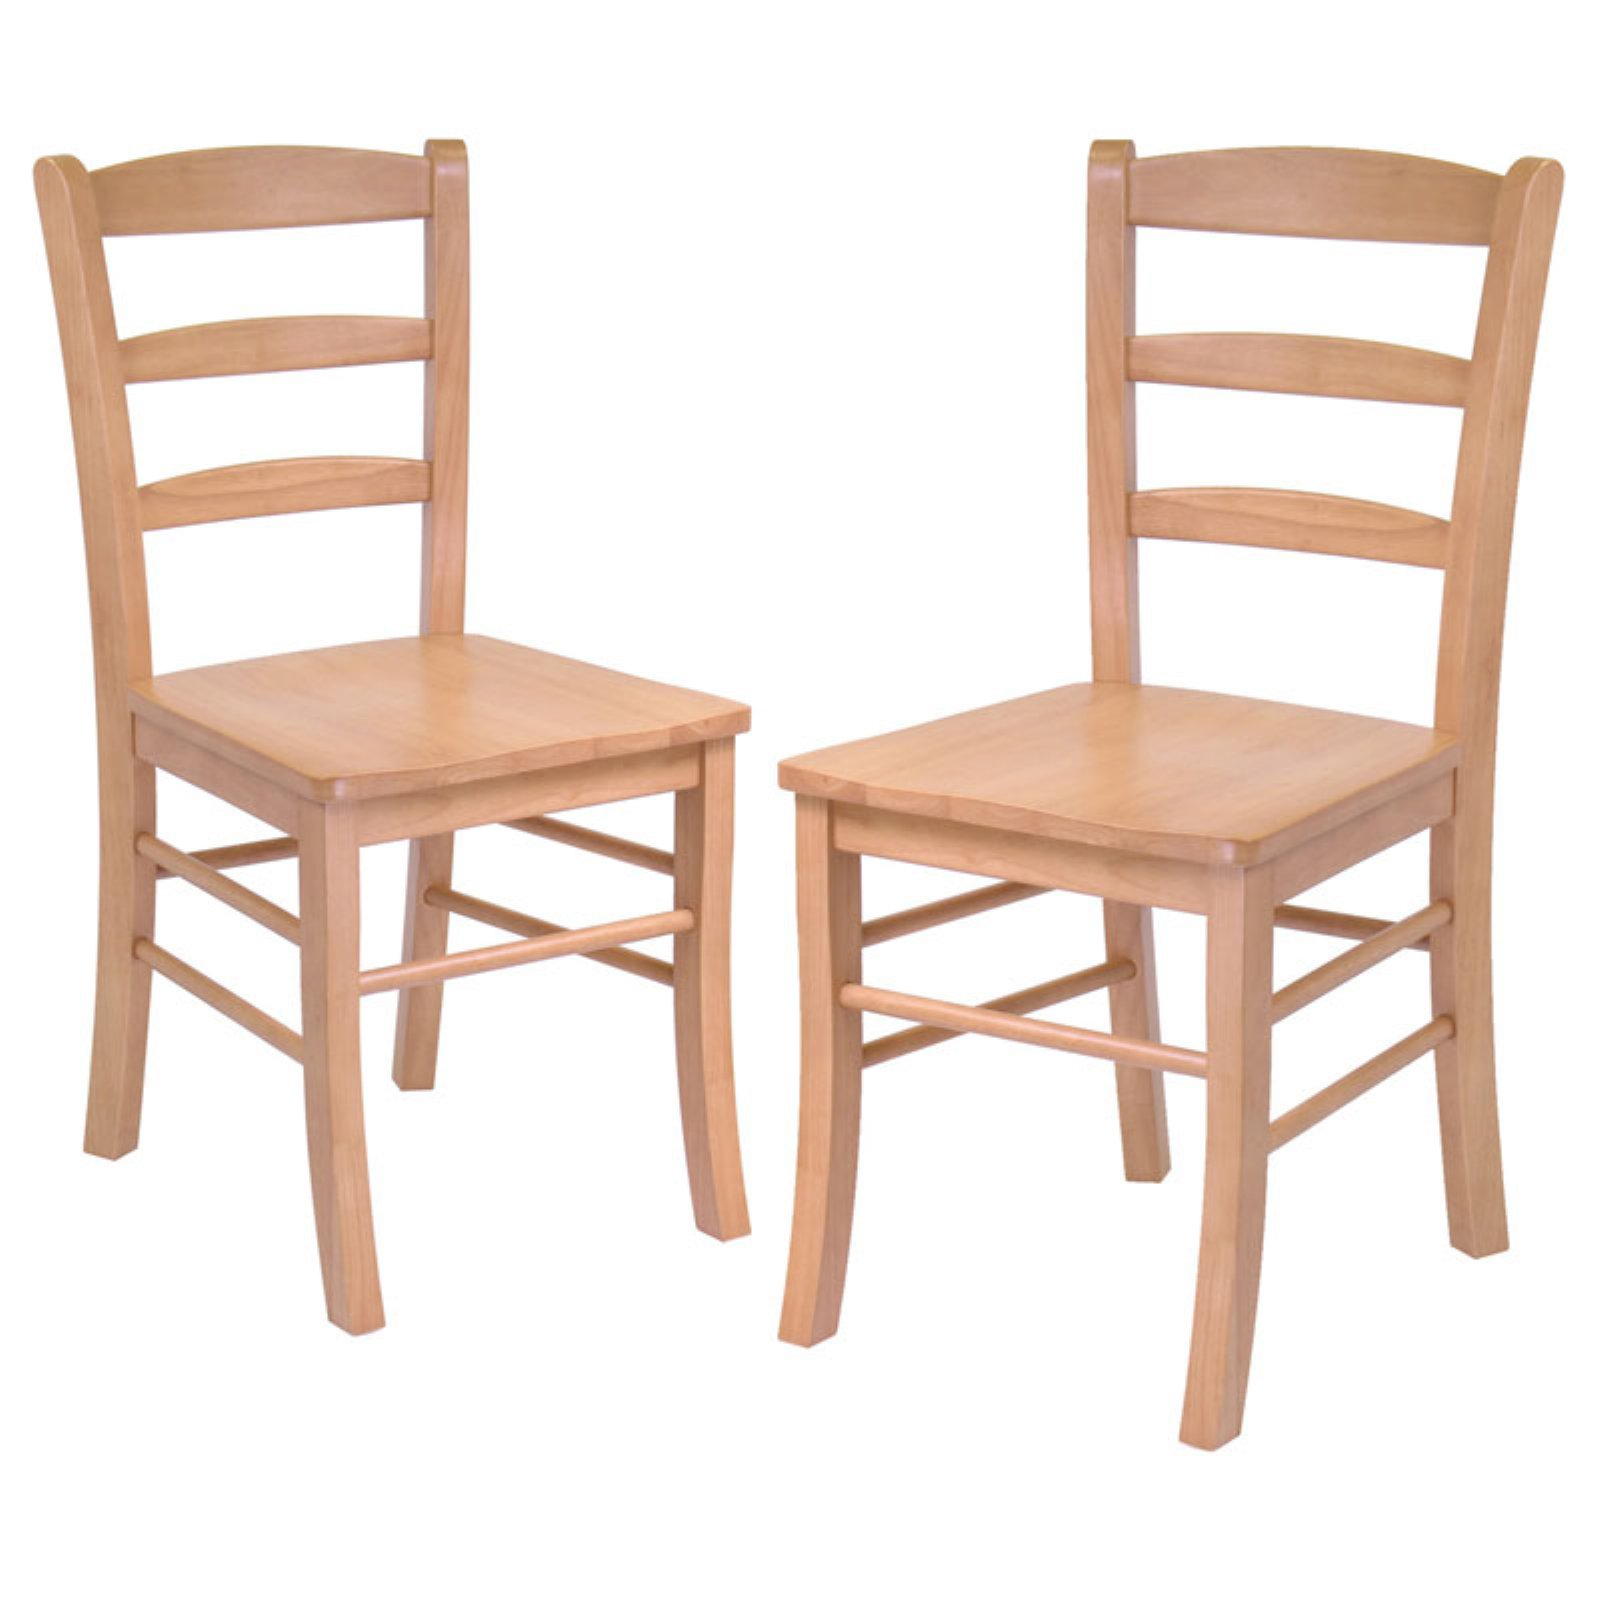 Winsome Ladder Back Chairs - Set of 2